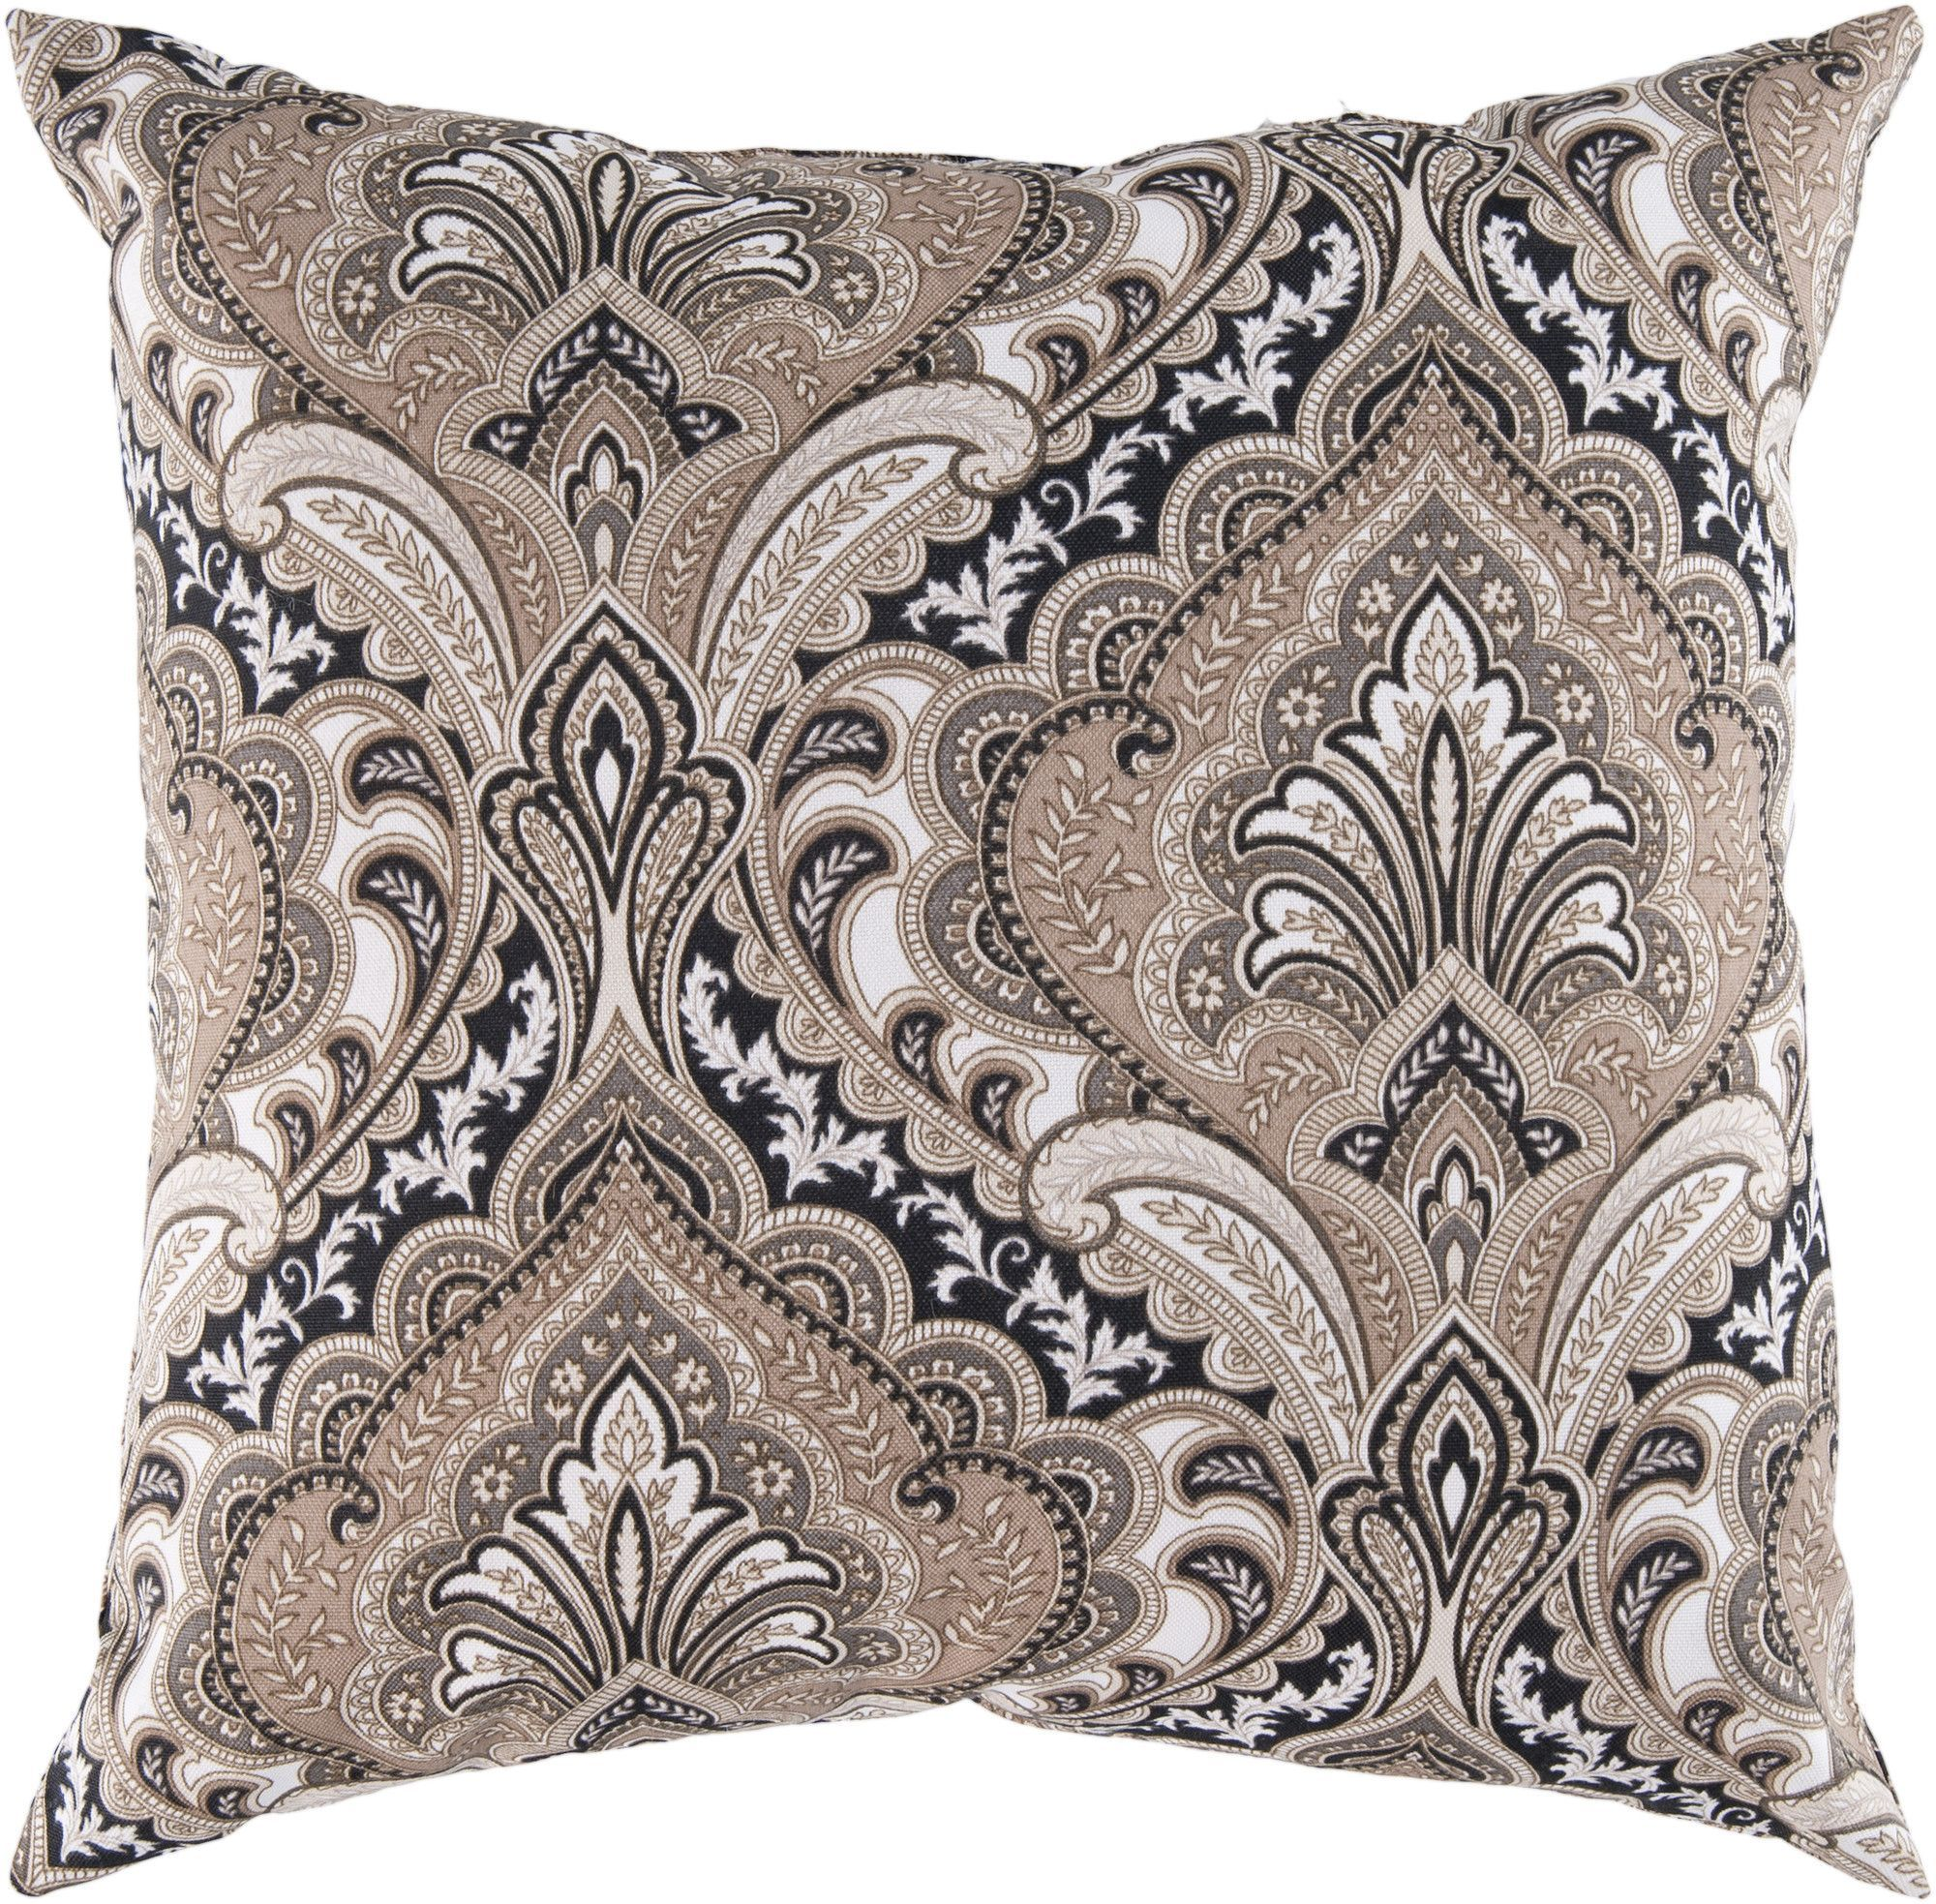 Distinguished Damask Outdoor Pillow Cover